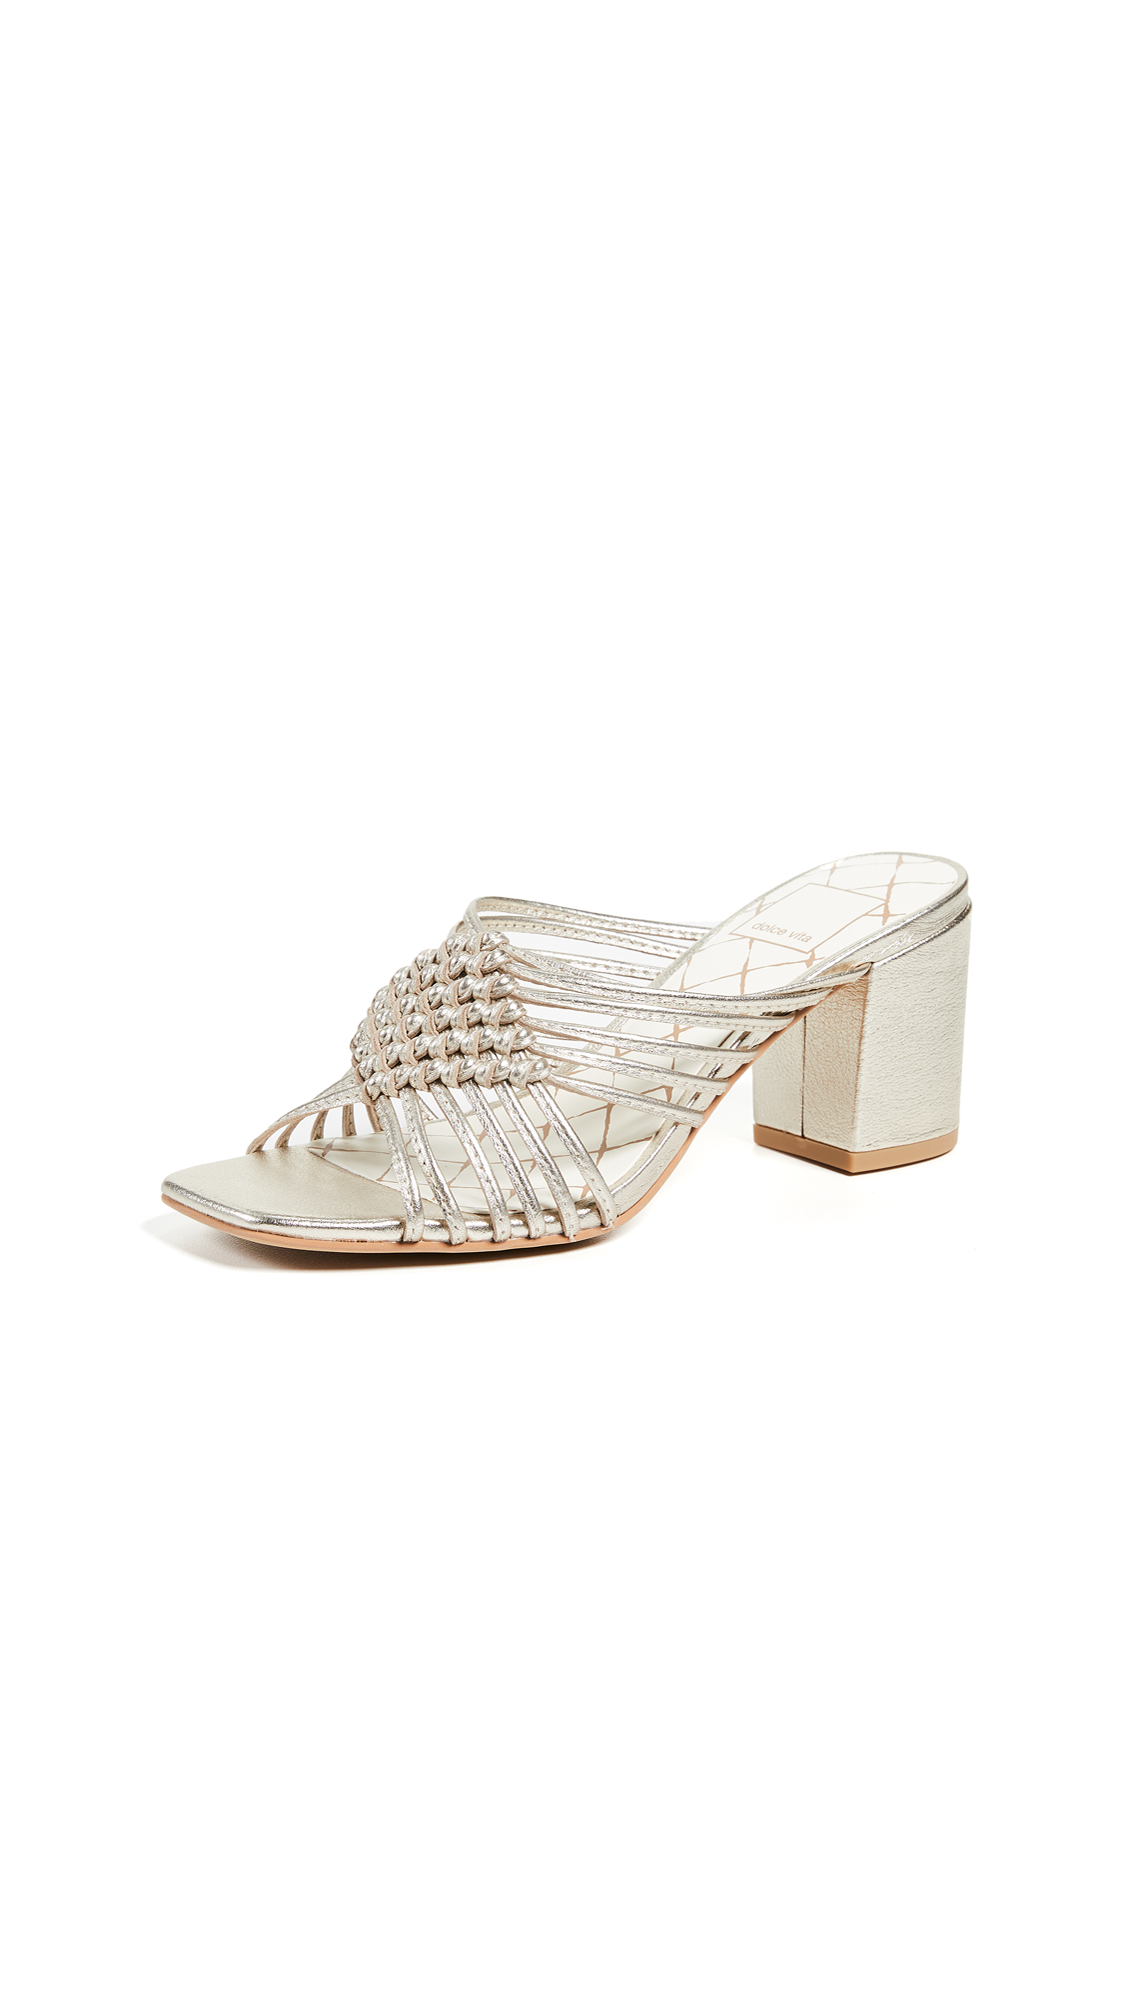 Dolce Vita Delana Woven Block Heel Sandals - Light Gold